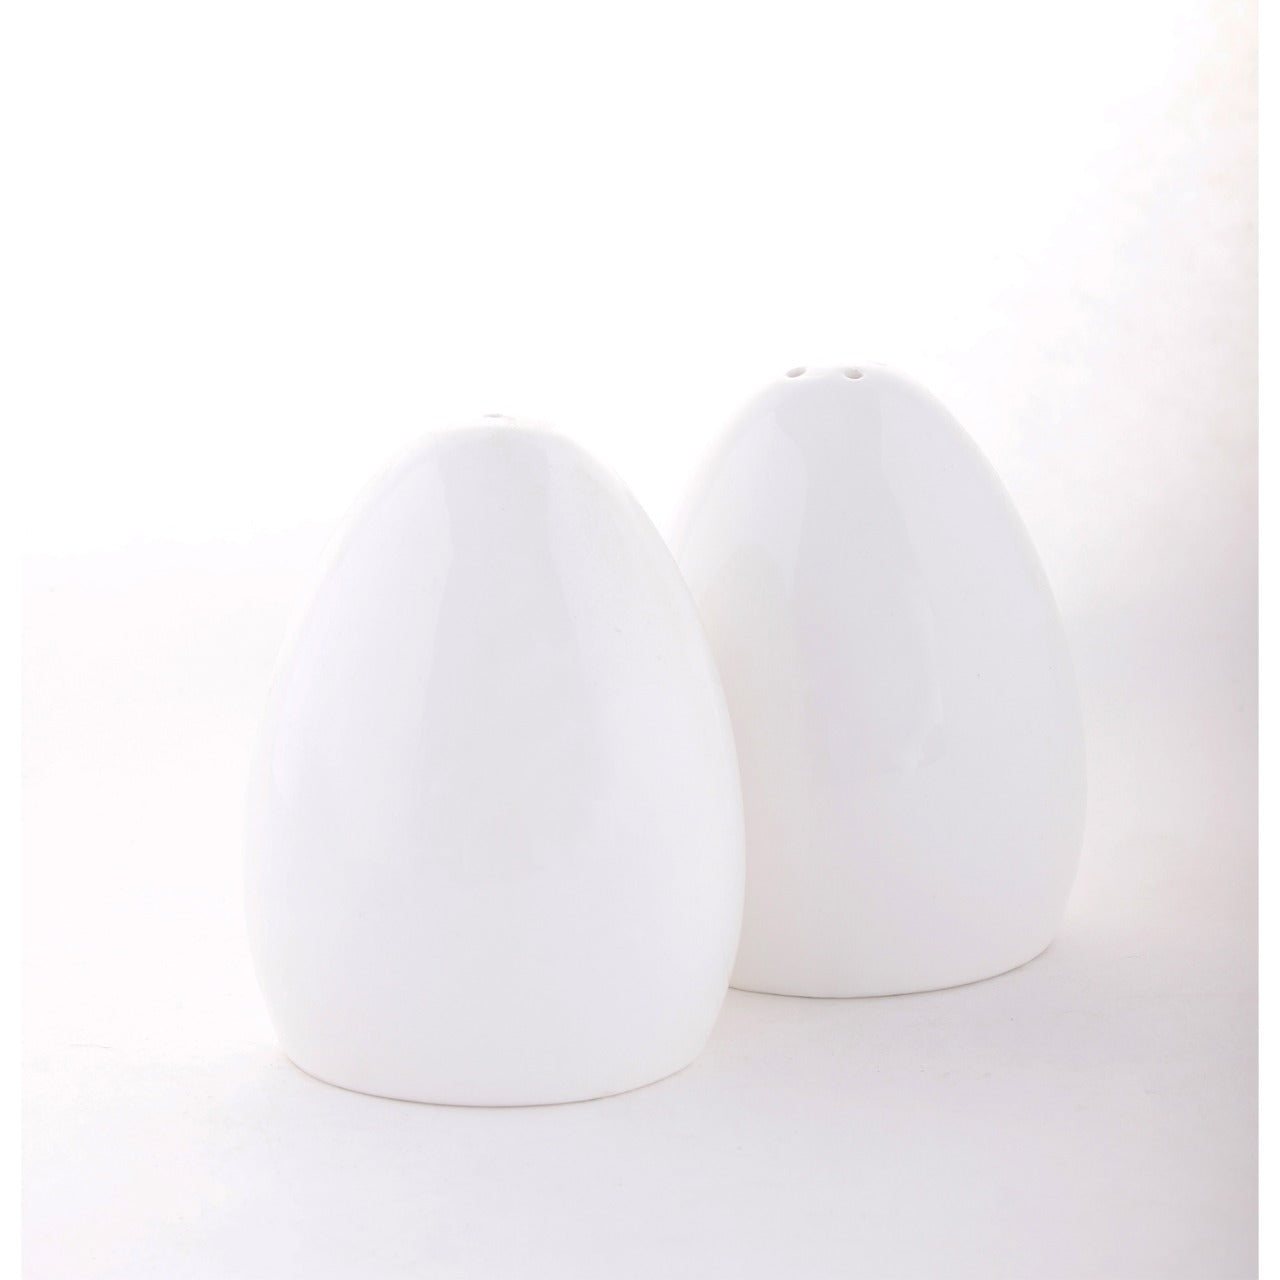 Egg Cruet Set,Bone China,Clay Craft,Set of 6 pairs